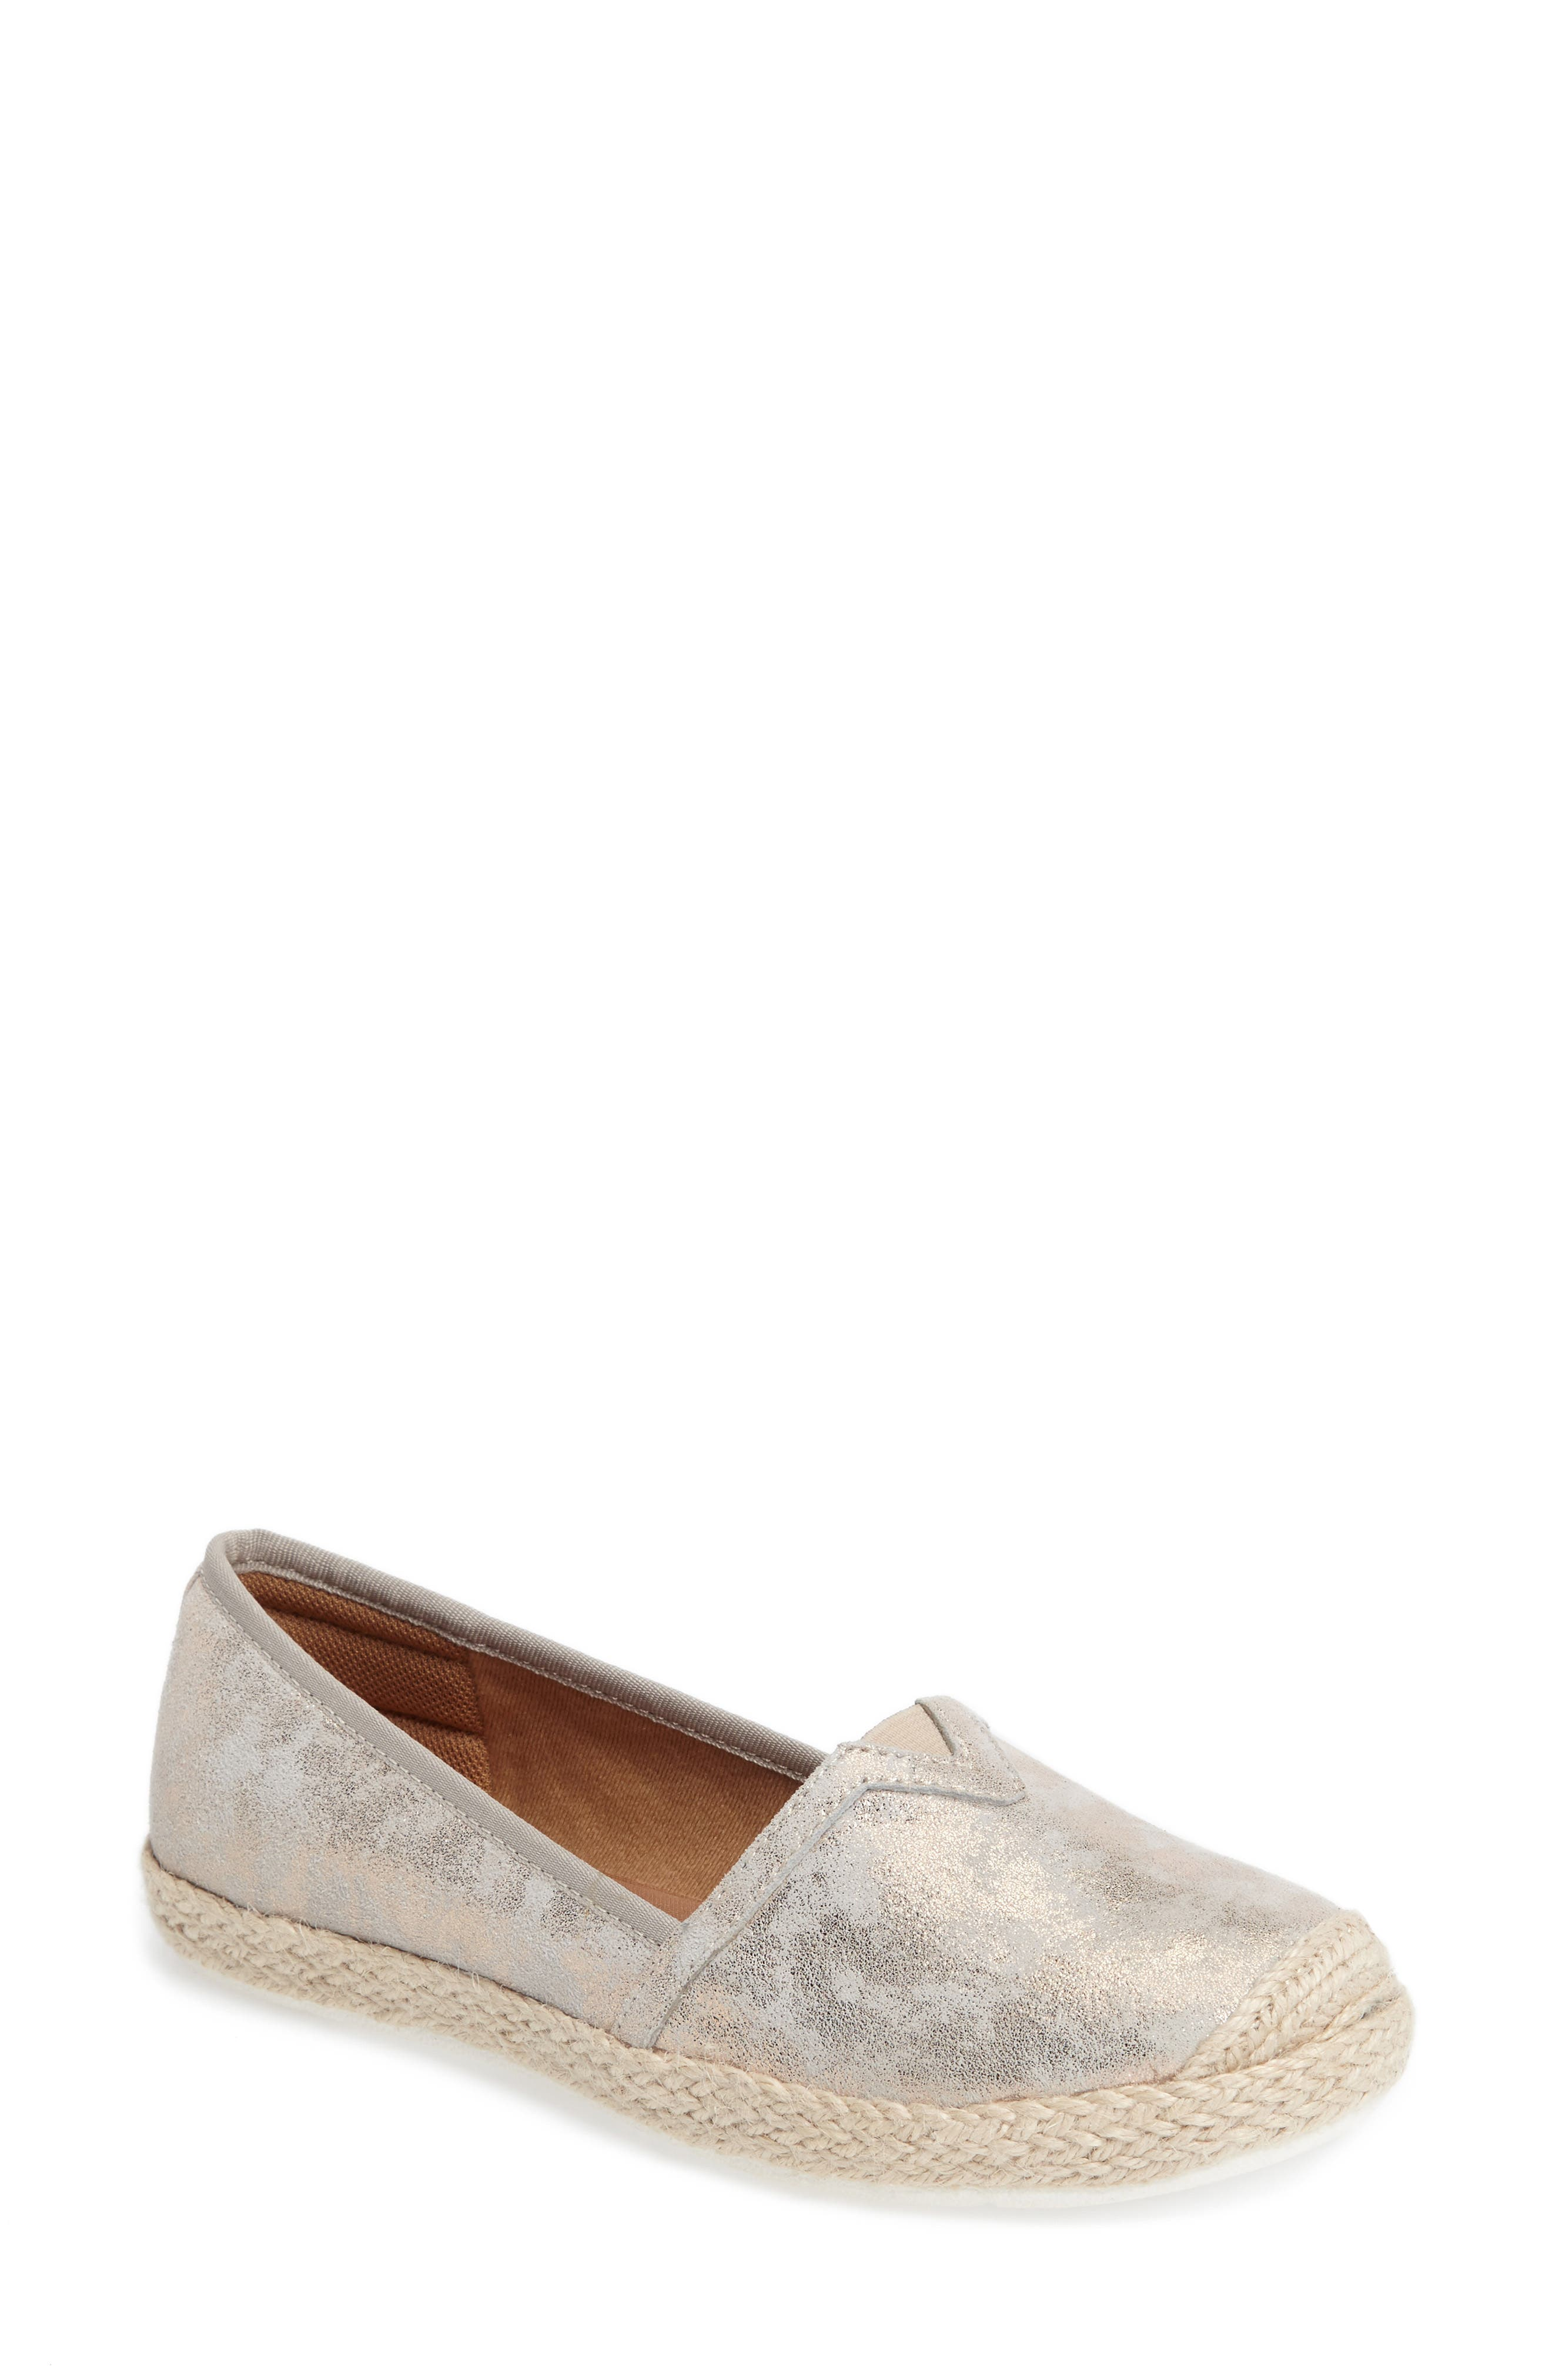 Sheridan Espadrille Flat,                         Main,                         color, IVORY SUEDE